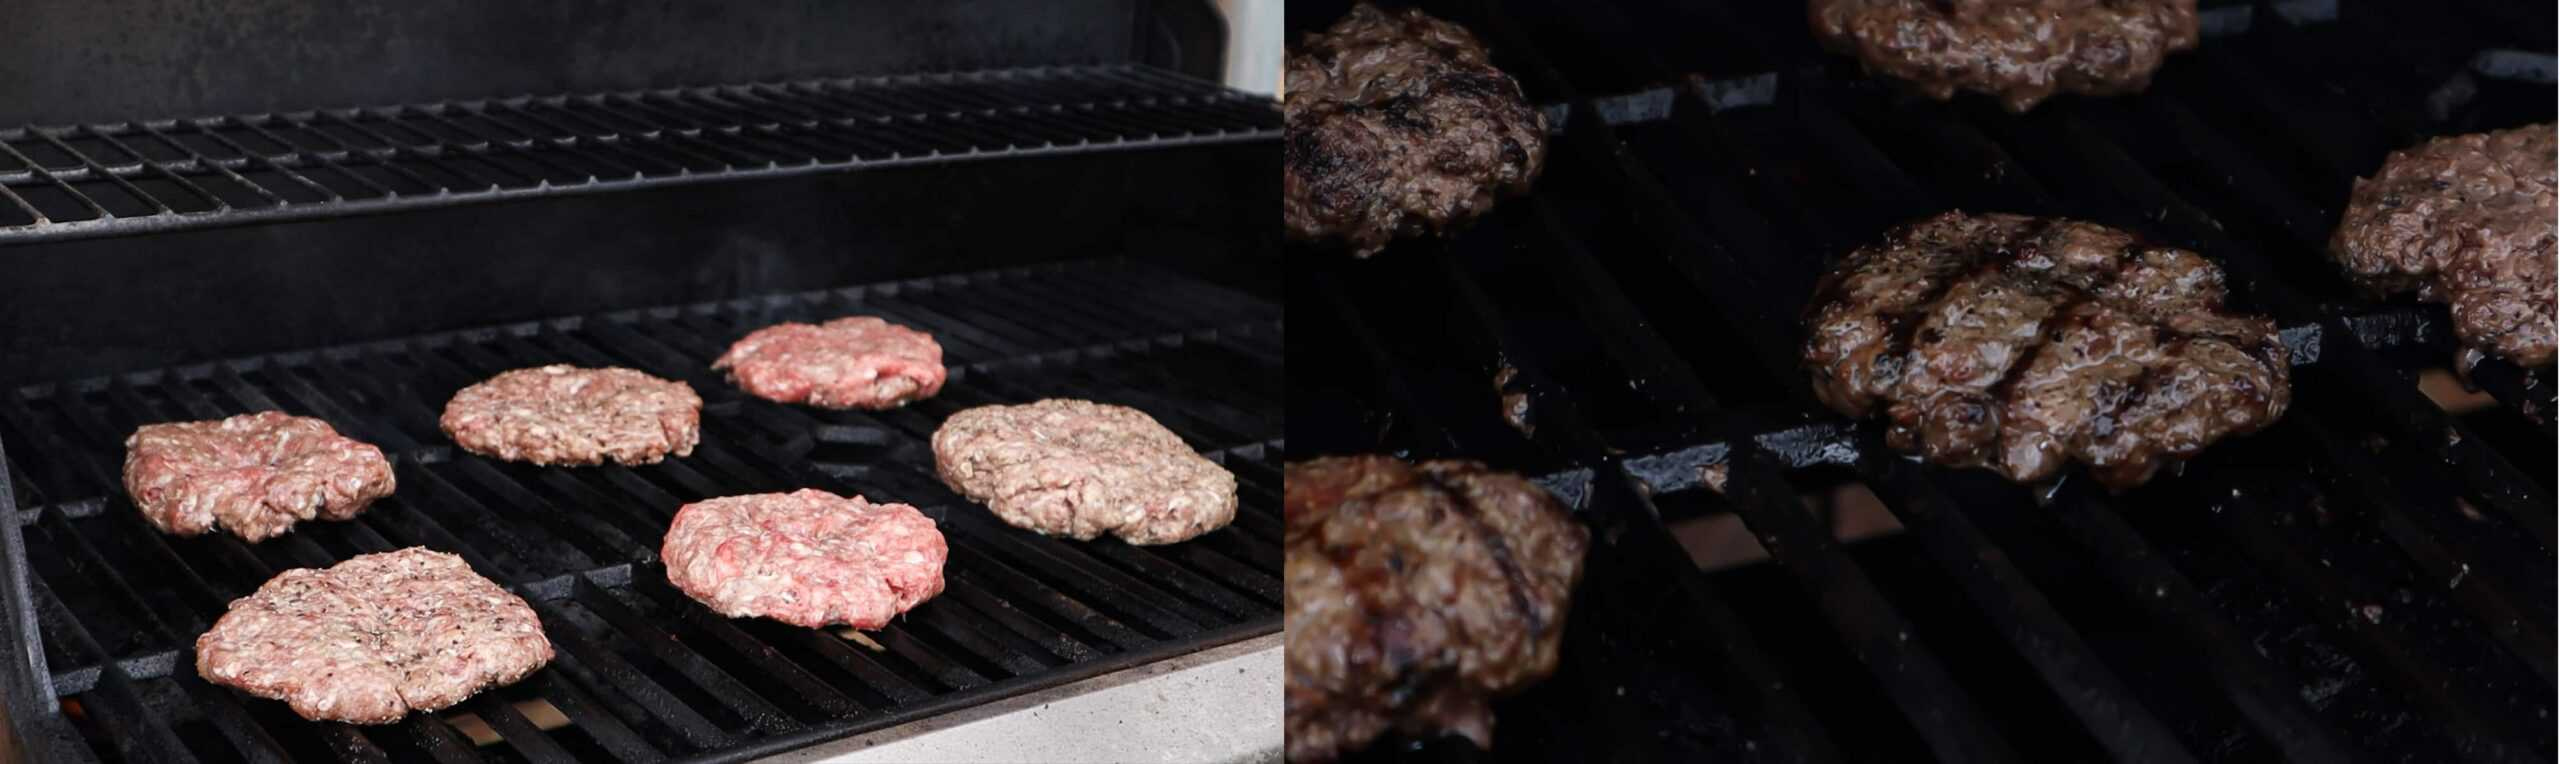 patties on grill- uncooked vs cooked